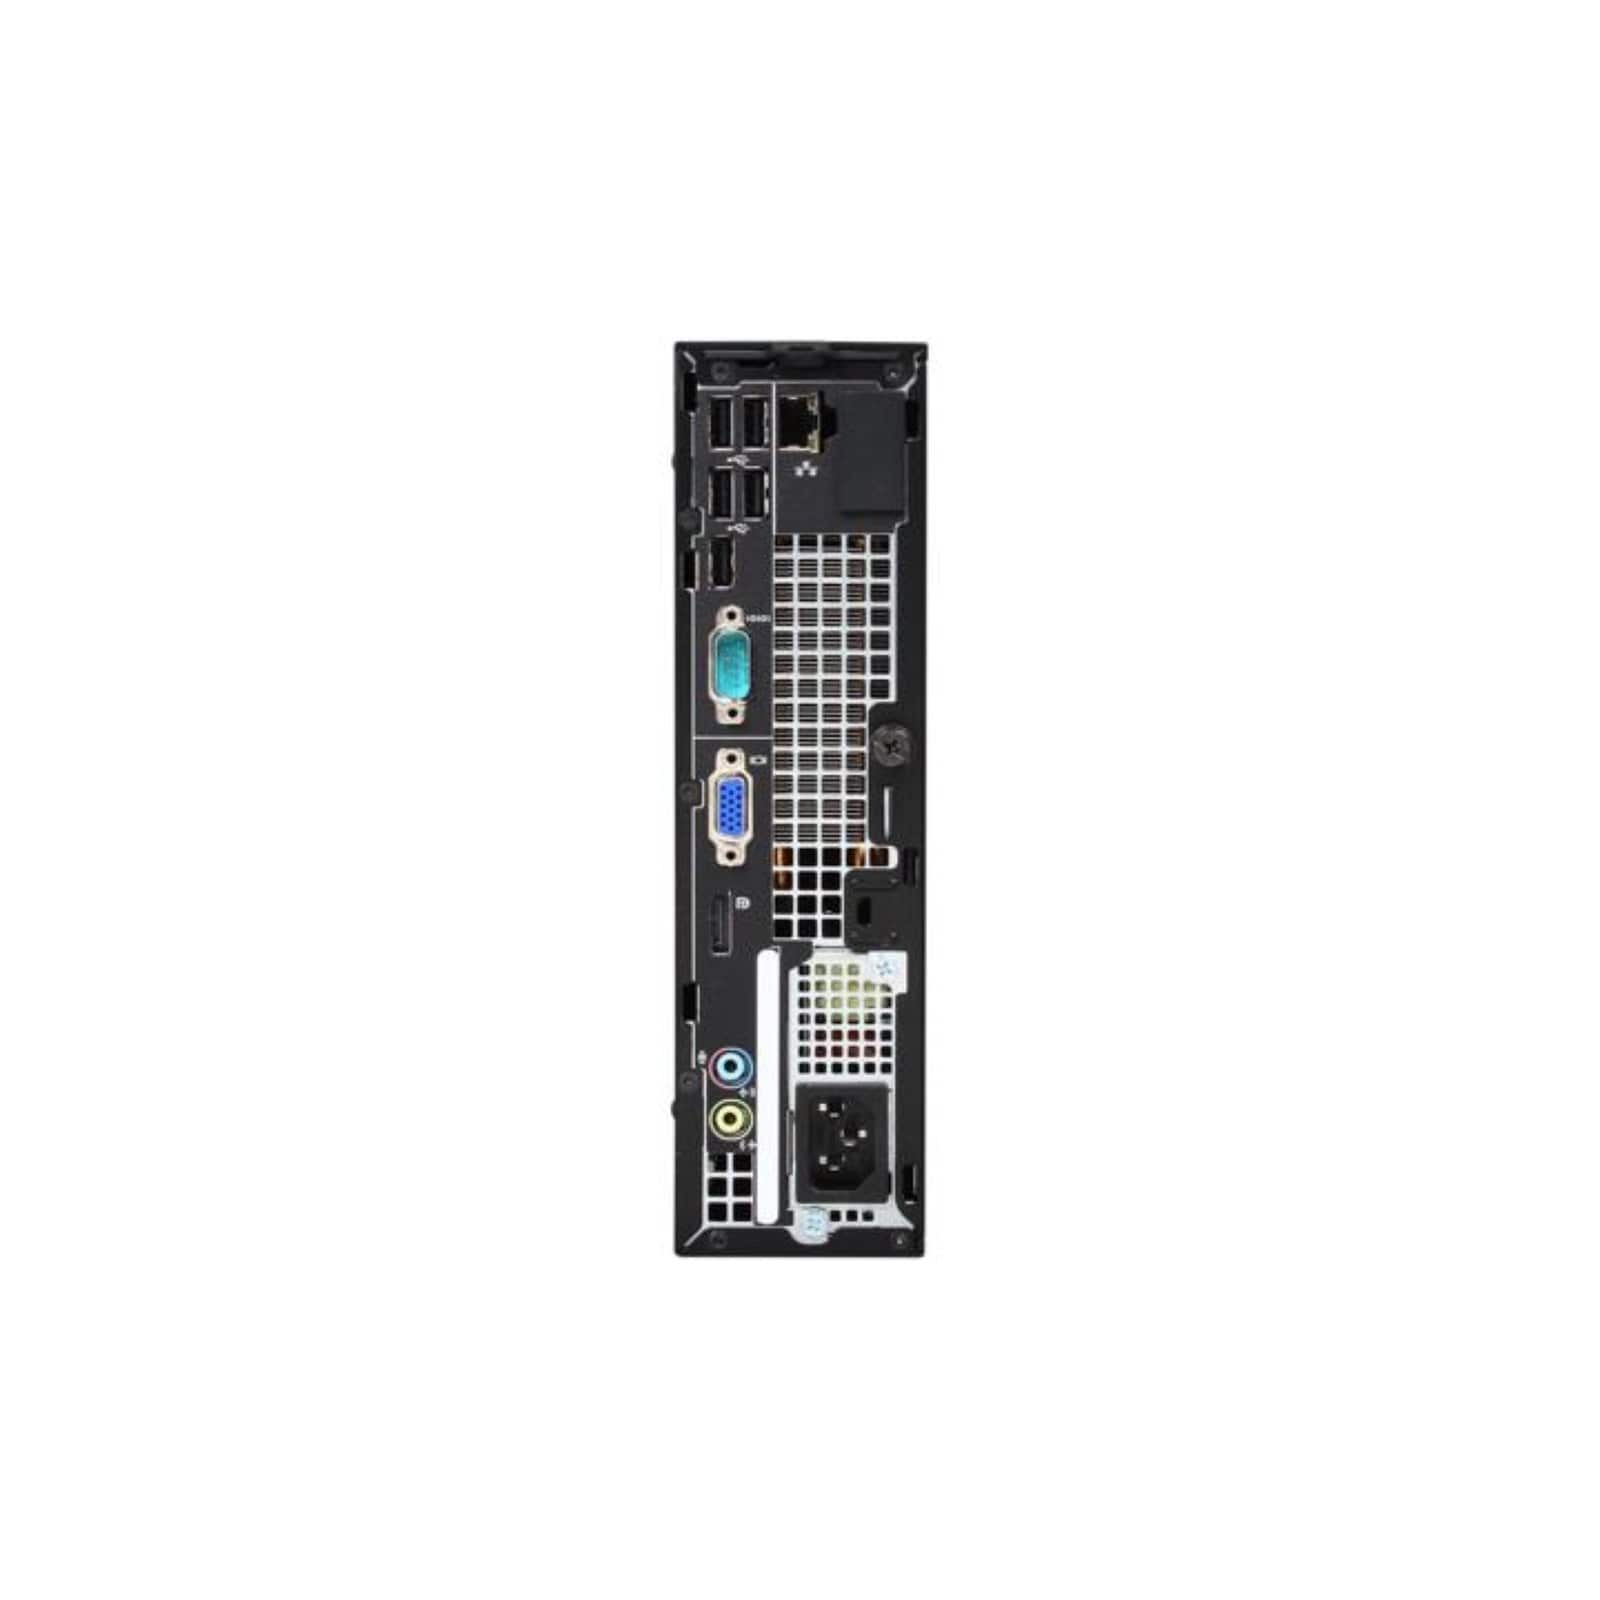 Dell Optiplex 790 USFF Standard Refurb PC - Intel i3 2100 2nd Gen 3.1 GHz  8GB DIMM DDR3 SATA 2.5